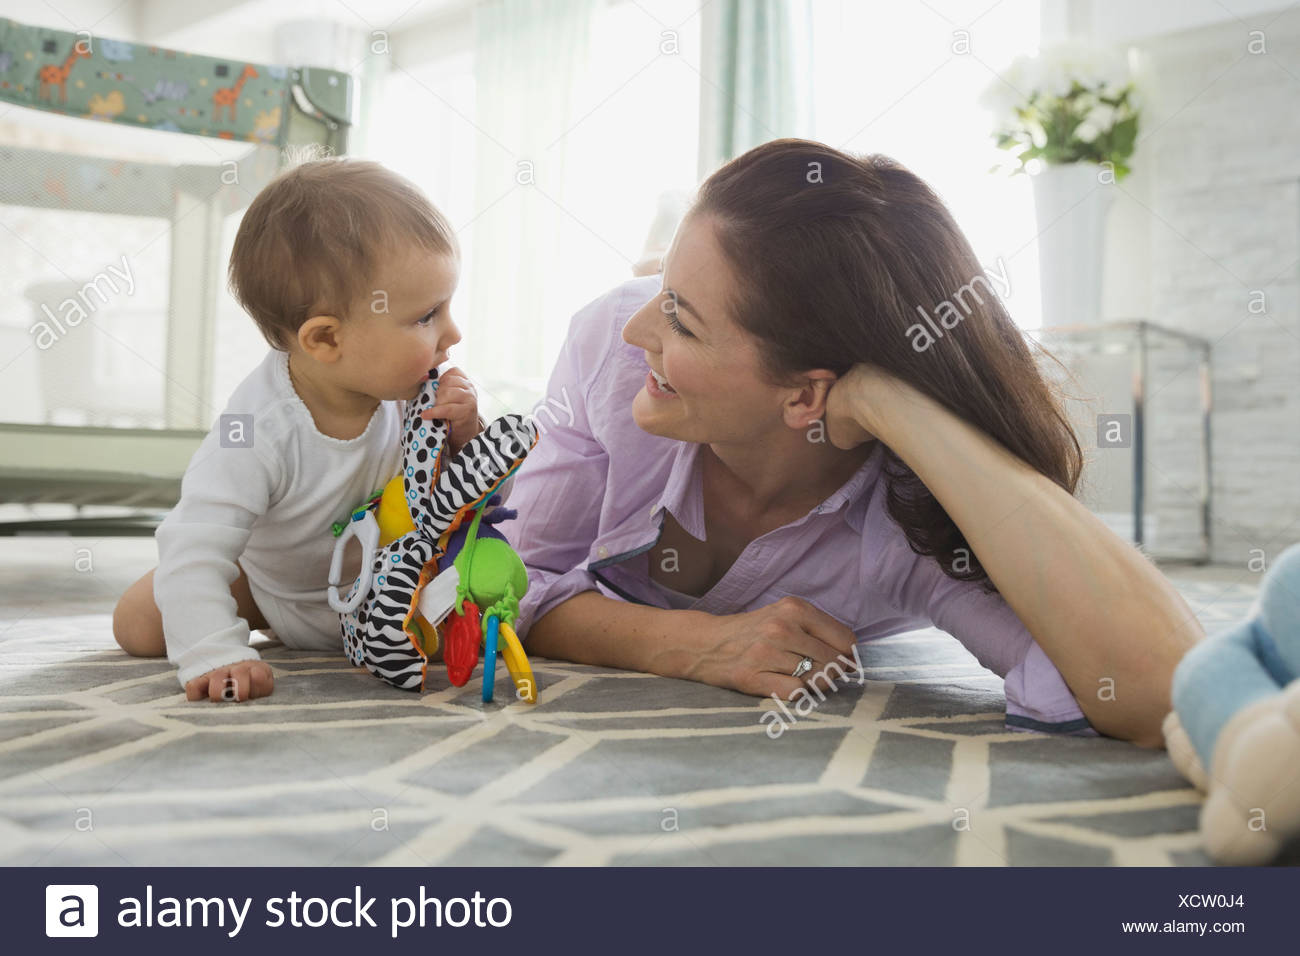 Cheerful mother playing with baby girl at home - Stock Image